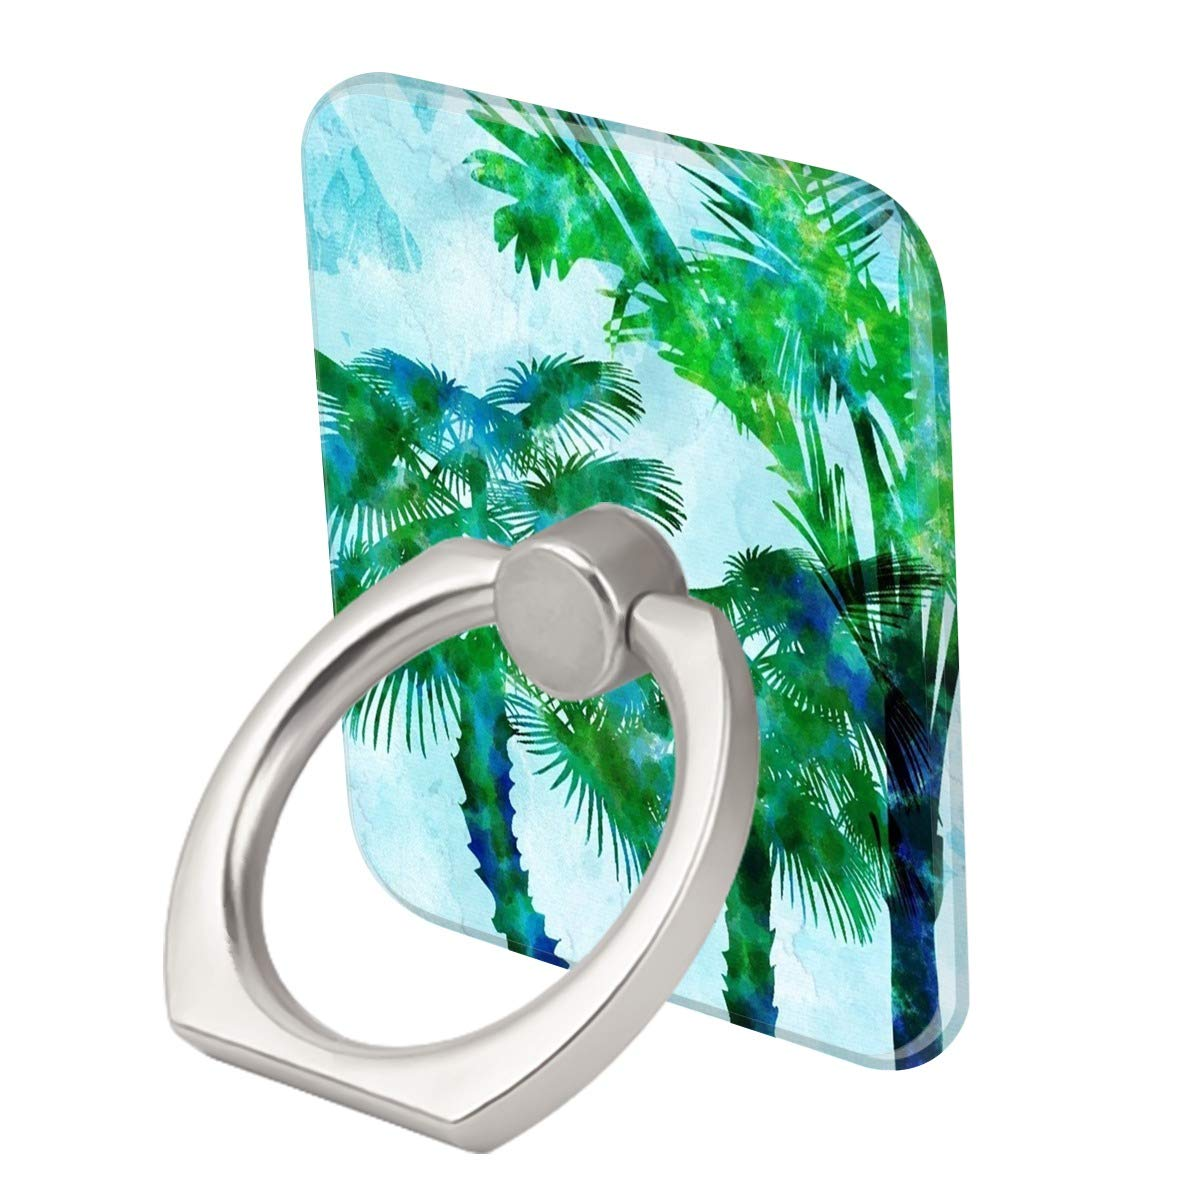 Watercolor Painting Palm Tree Ring Phone Holder Stand Mounts for iPhone iPad, Samsung Other Smartphones